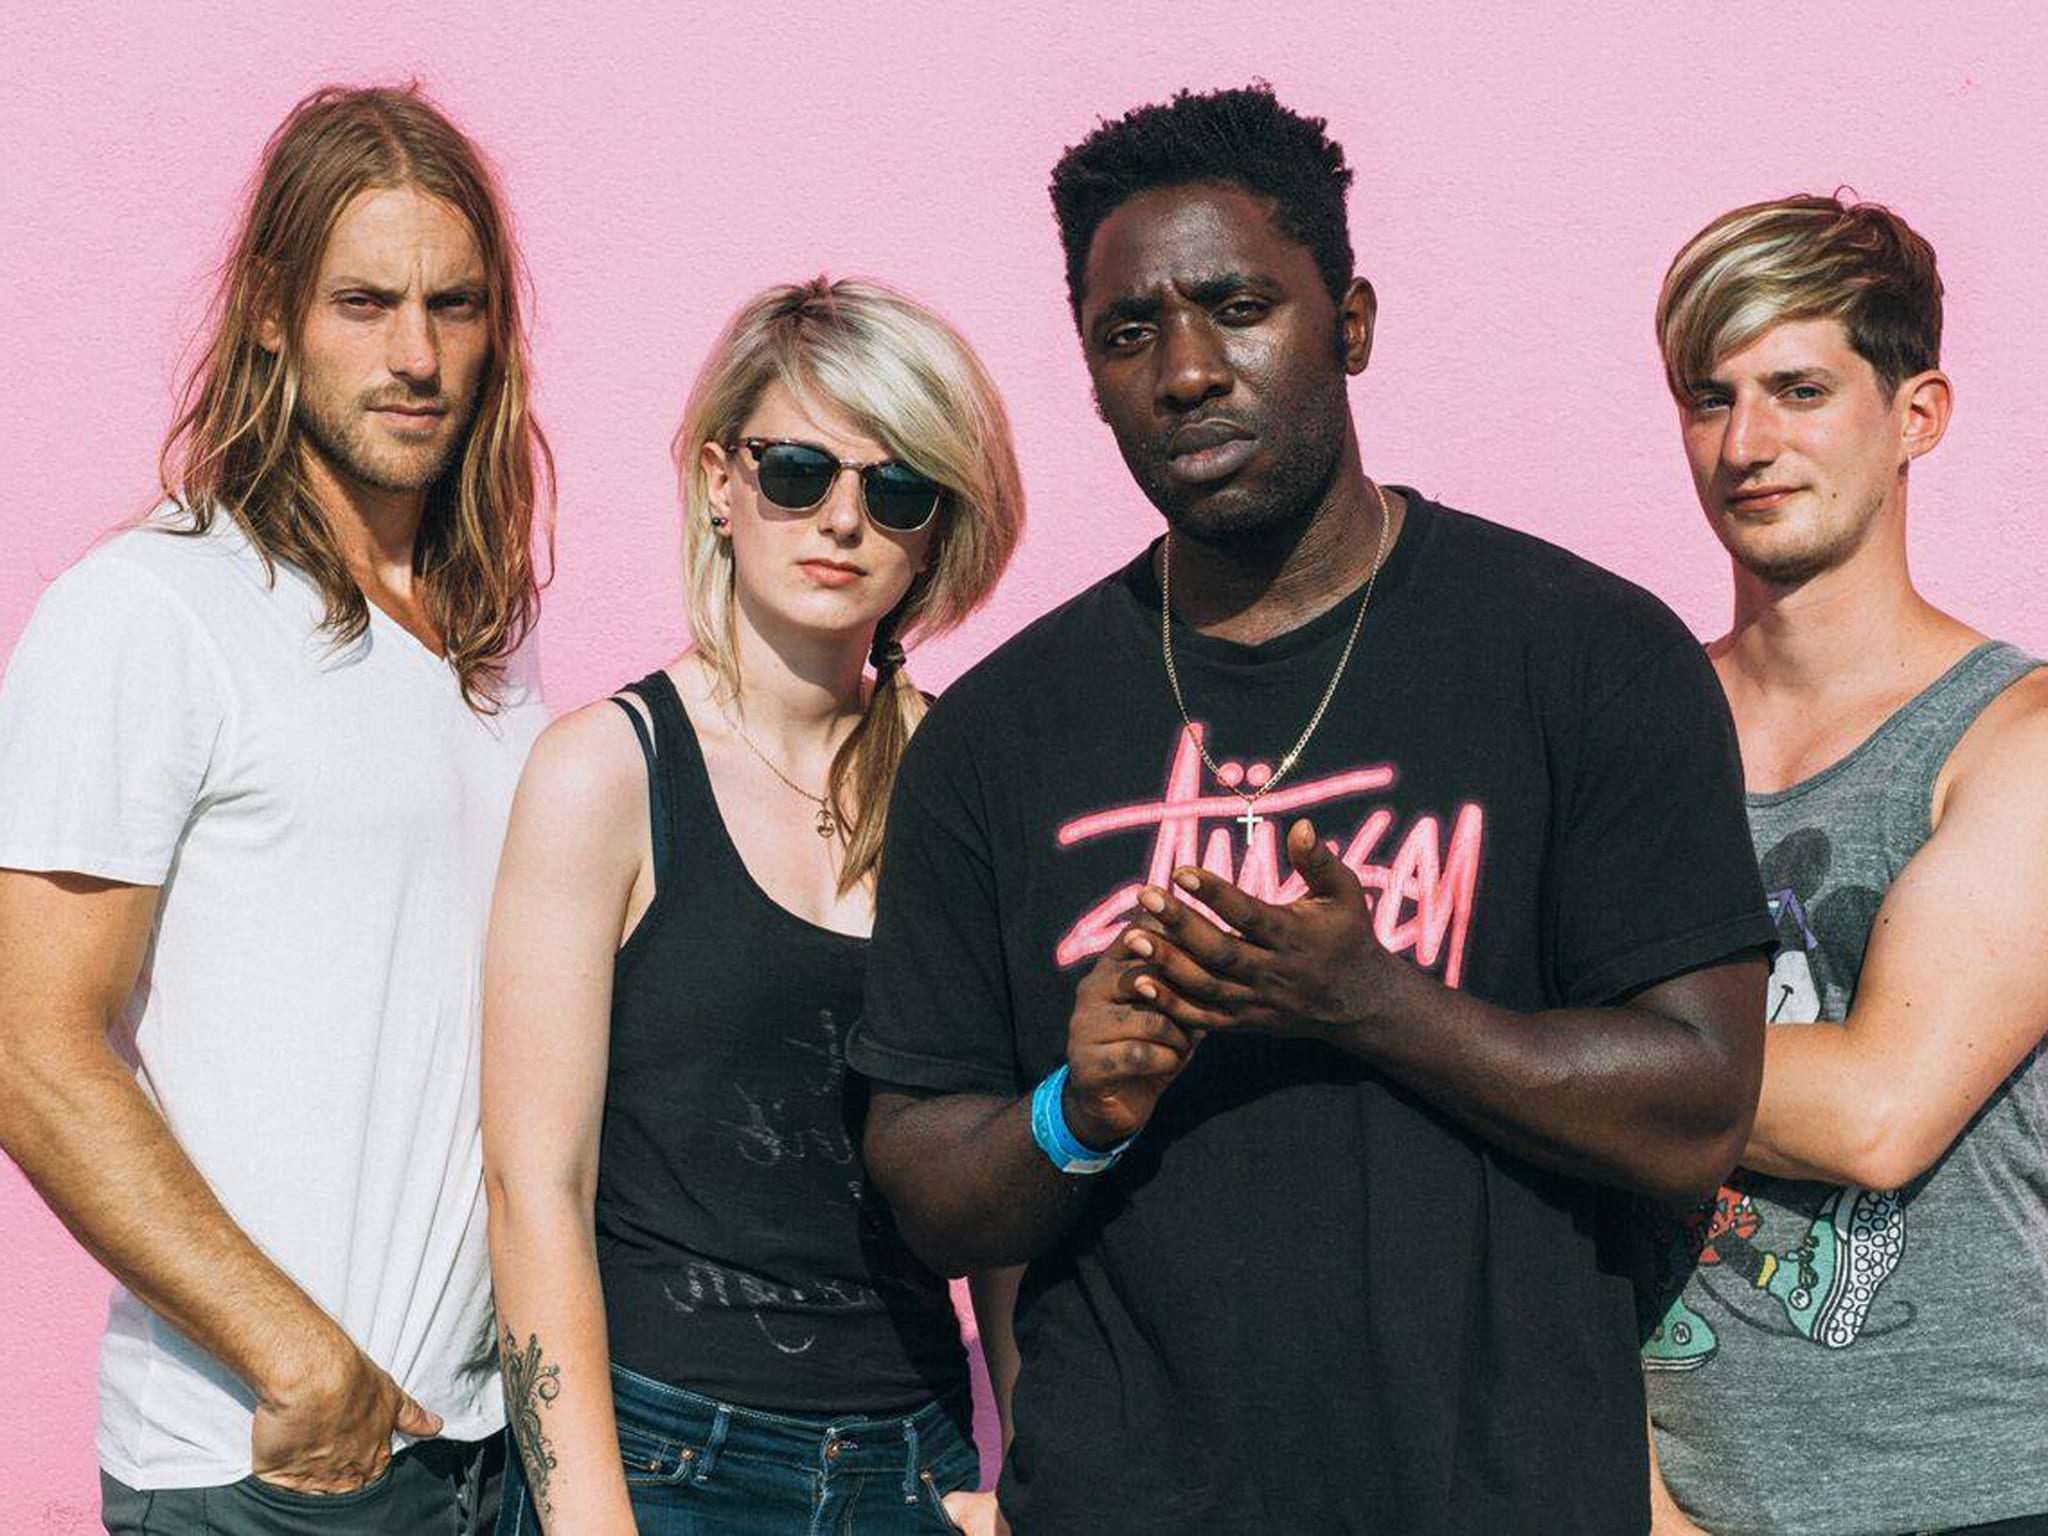 Live Review: Bloc Party // Albert Hall, Manchester 03.12.15